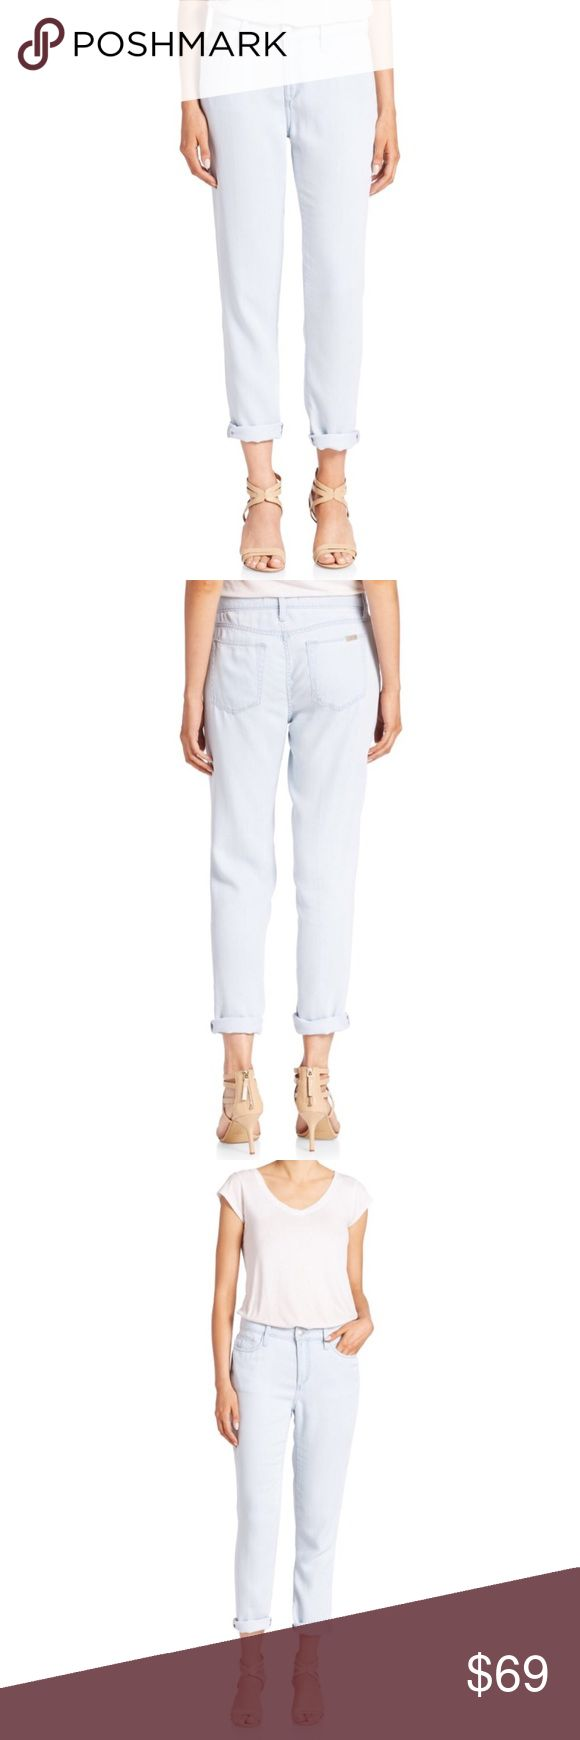 [NWT] Joe's Jeans Billie Boyfriend Ankle Slim Jean Cute ankle jeans with boyfriend-style rolled cuffs Soft (but not stretchy) and lightweight jeans Button-fly with zip closure 5-pocket styling Tencel Joe's Jeans Jeans Boyfriend